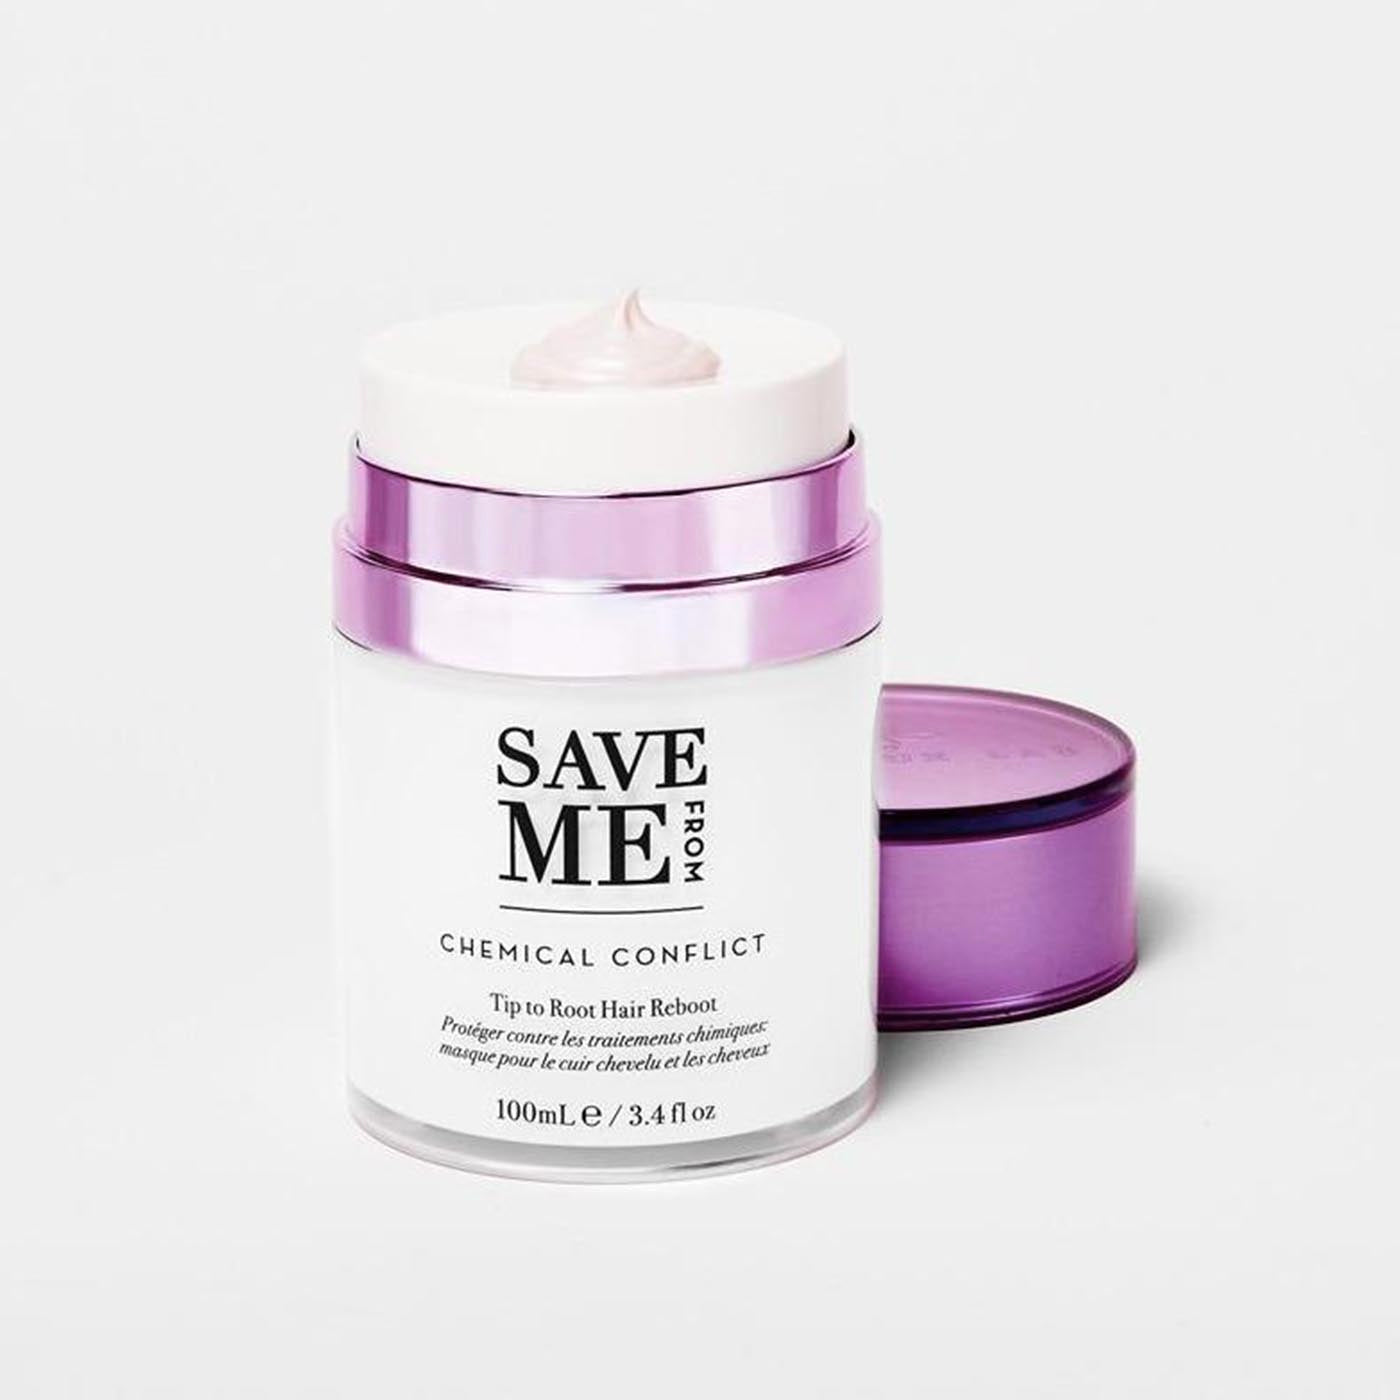 CHEMICAL CONFLICT - Tip to Root Hair Reboot 3.4 fl oz | Save Me From